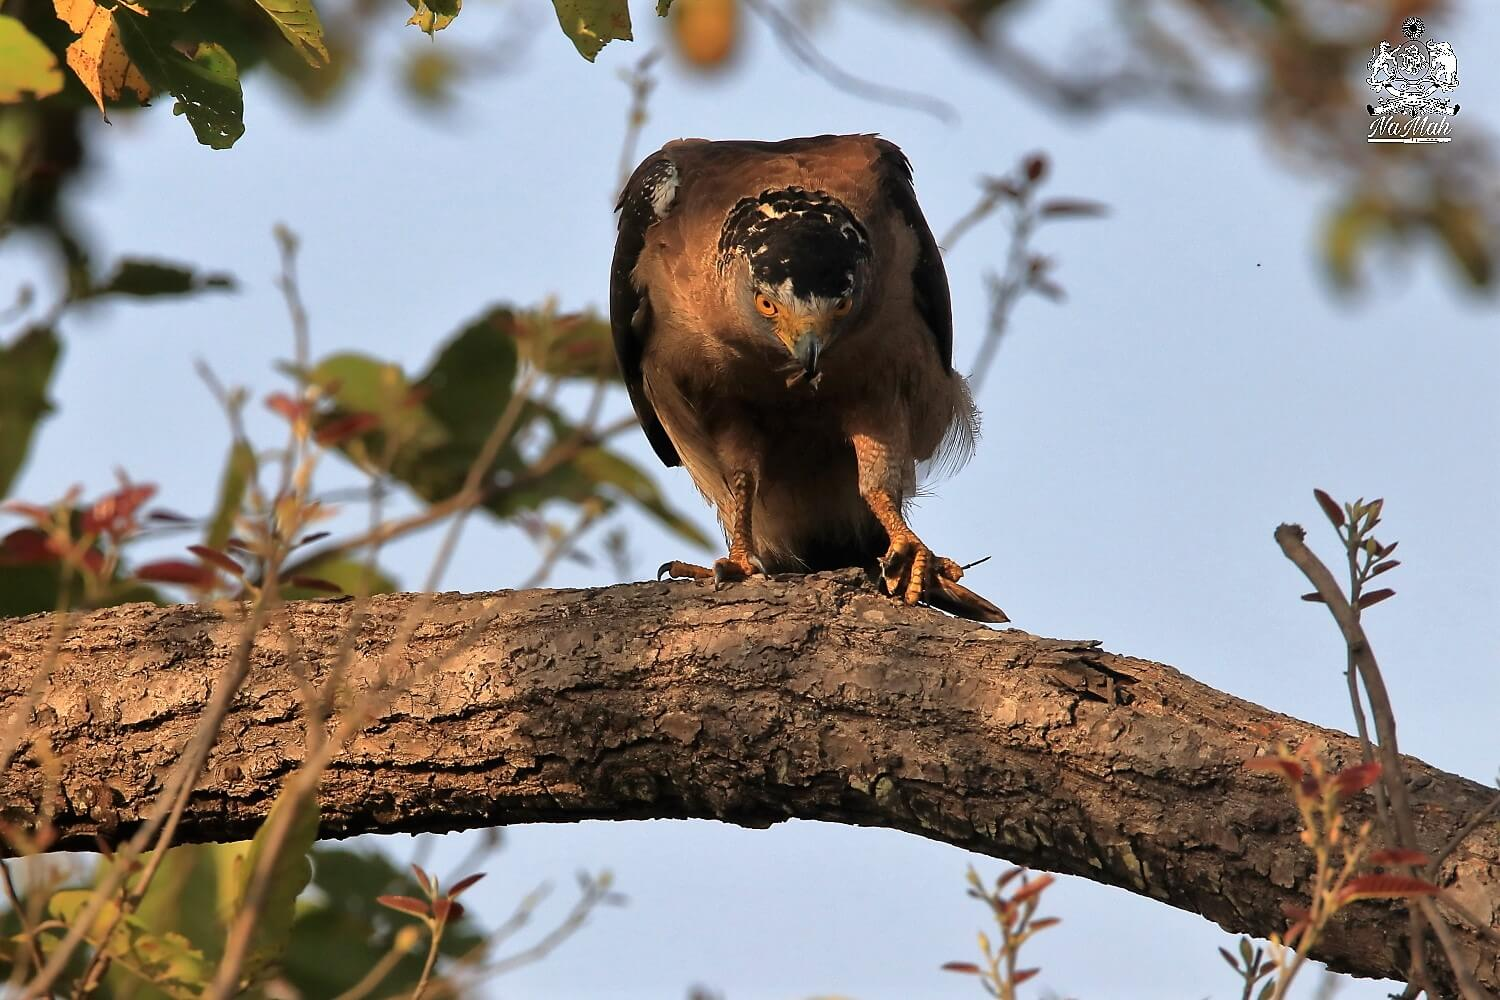 Serpent eagle Predator bird enjoying its meal of crab